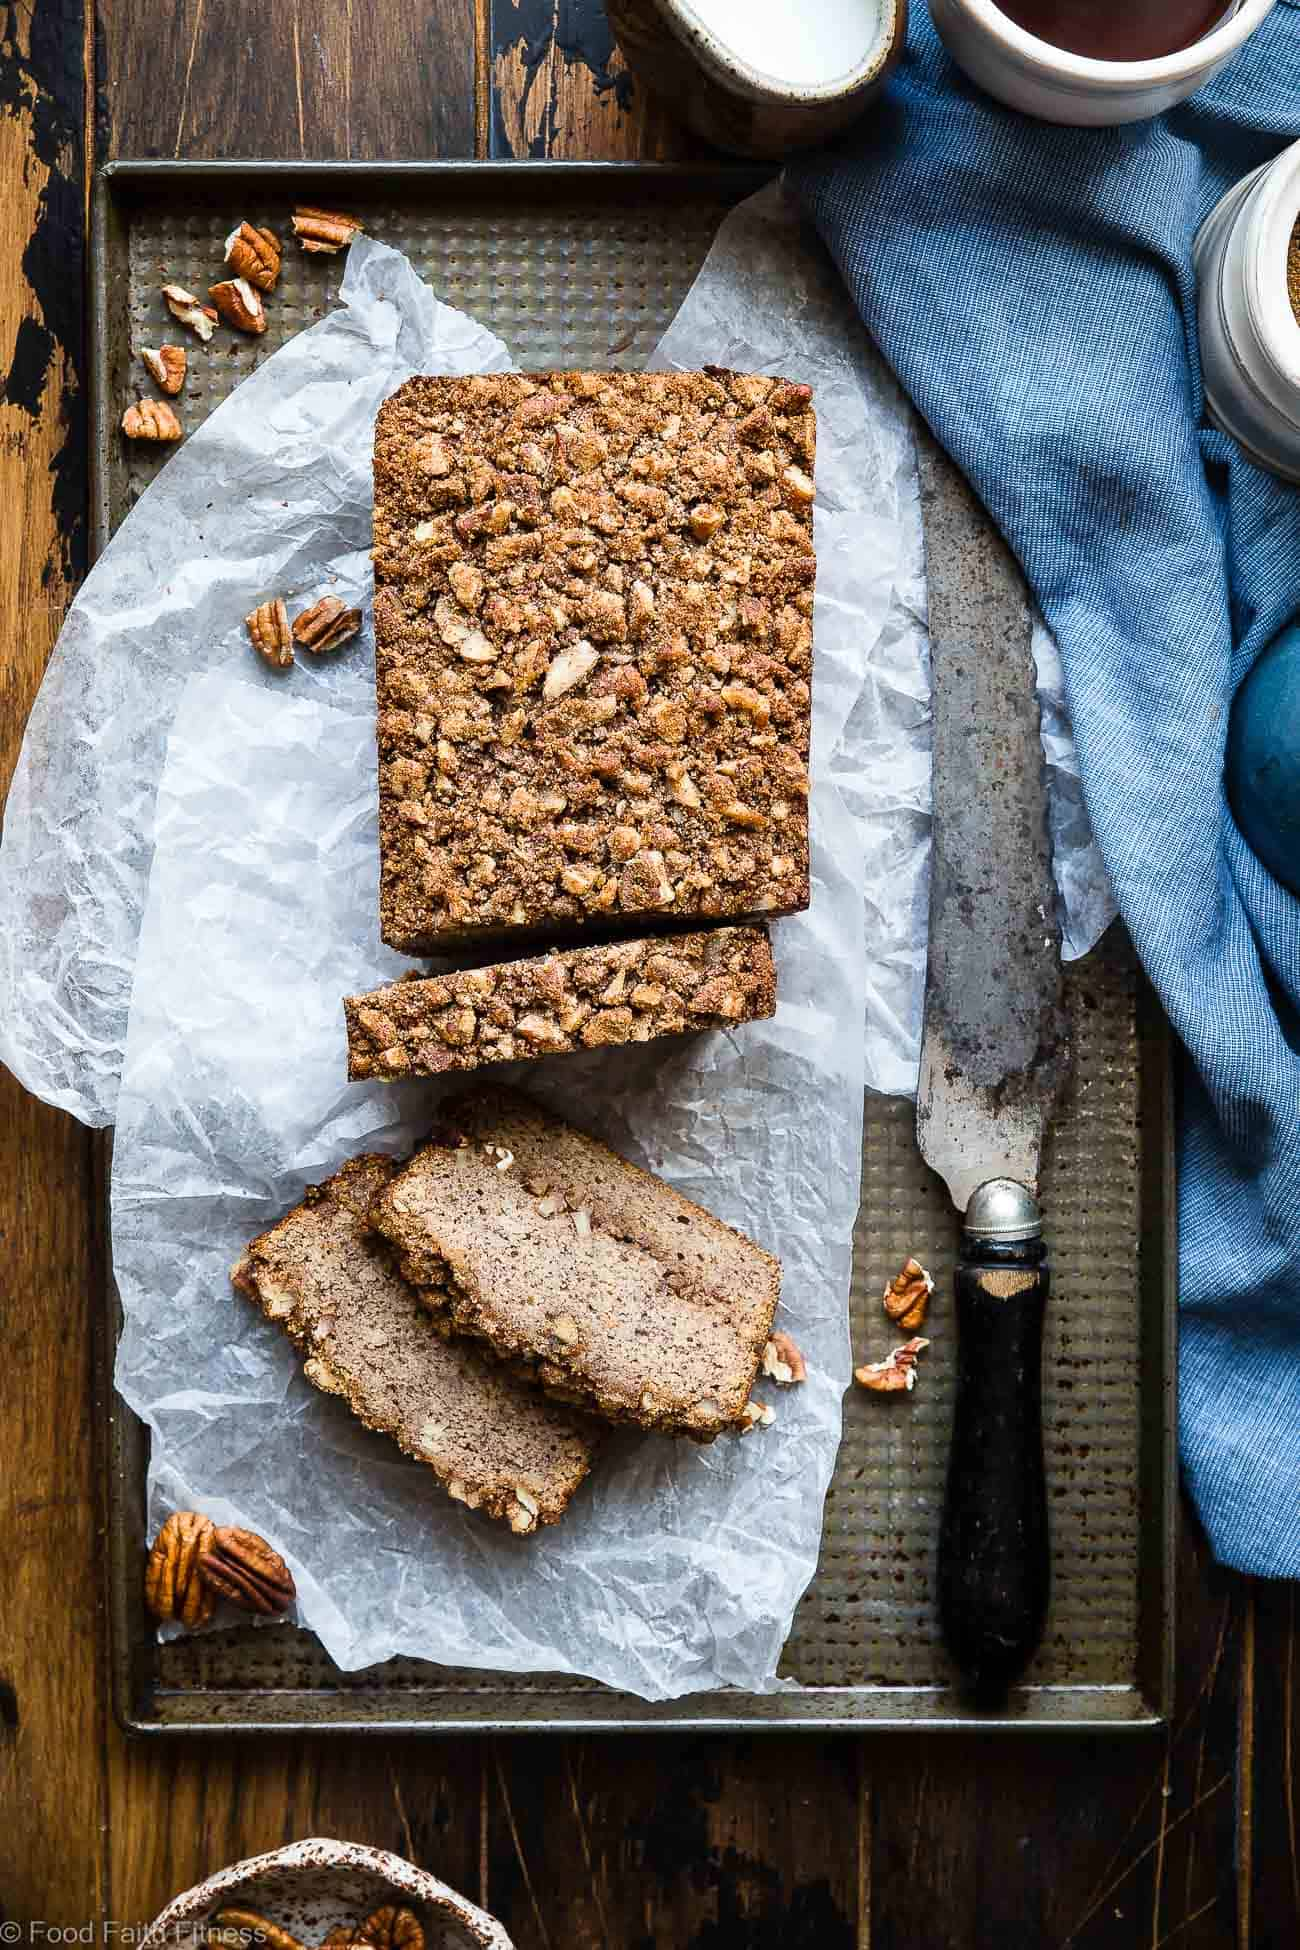 The Best Paleo Banana Bread with Pecan Streusel -This easyPaleo Coconut Flour Bread recipe is gluten/grain/dairy/refined sugar free but perfectly moist and sweet! The pecan topping MAKES it so addicting and you'll never know it's healthy! | Foodfaithfitness.com | @FoodFaithFit